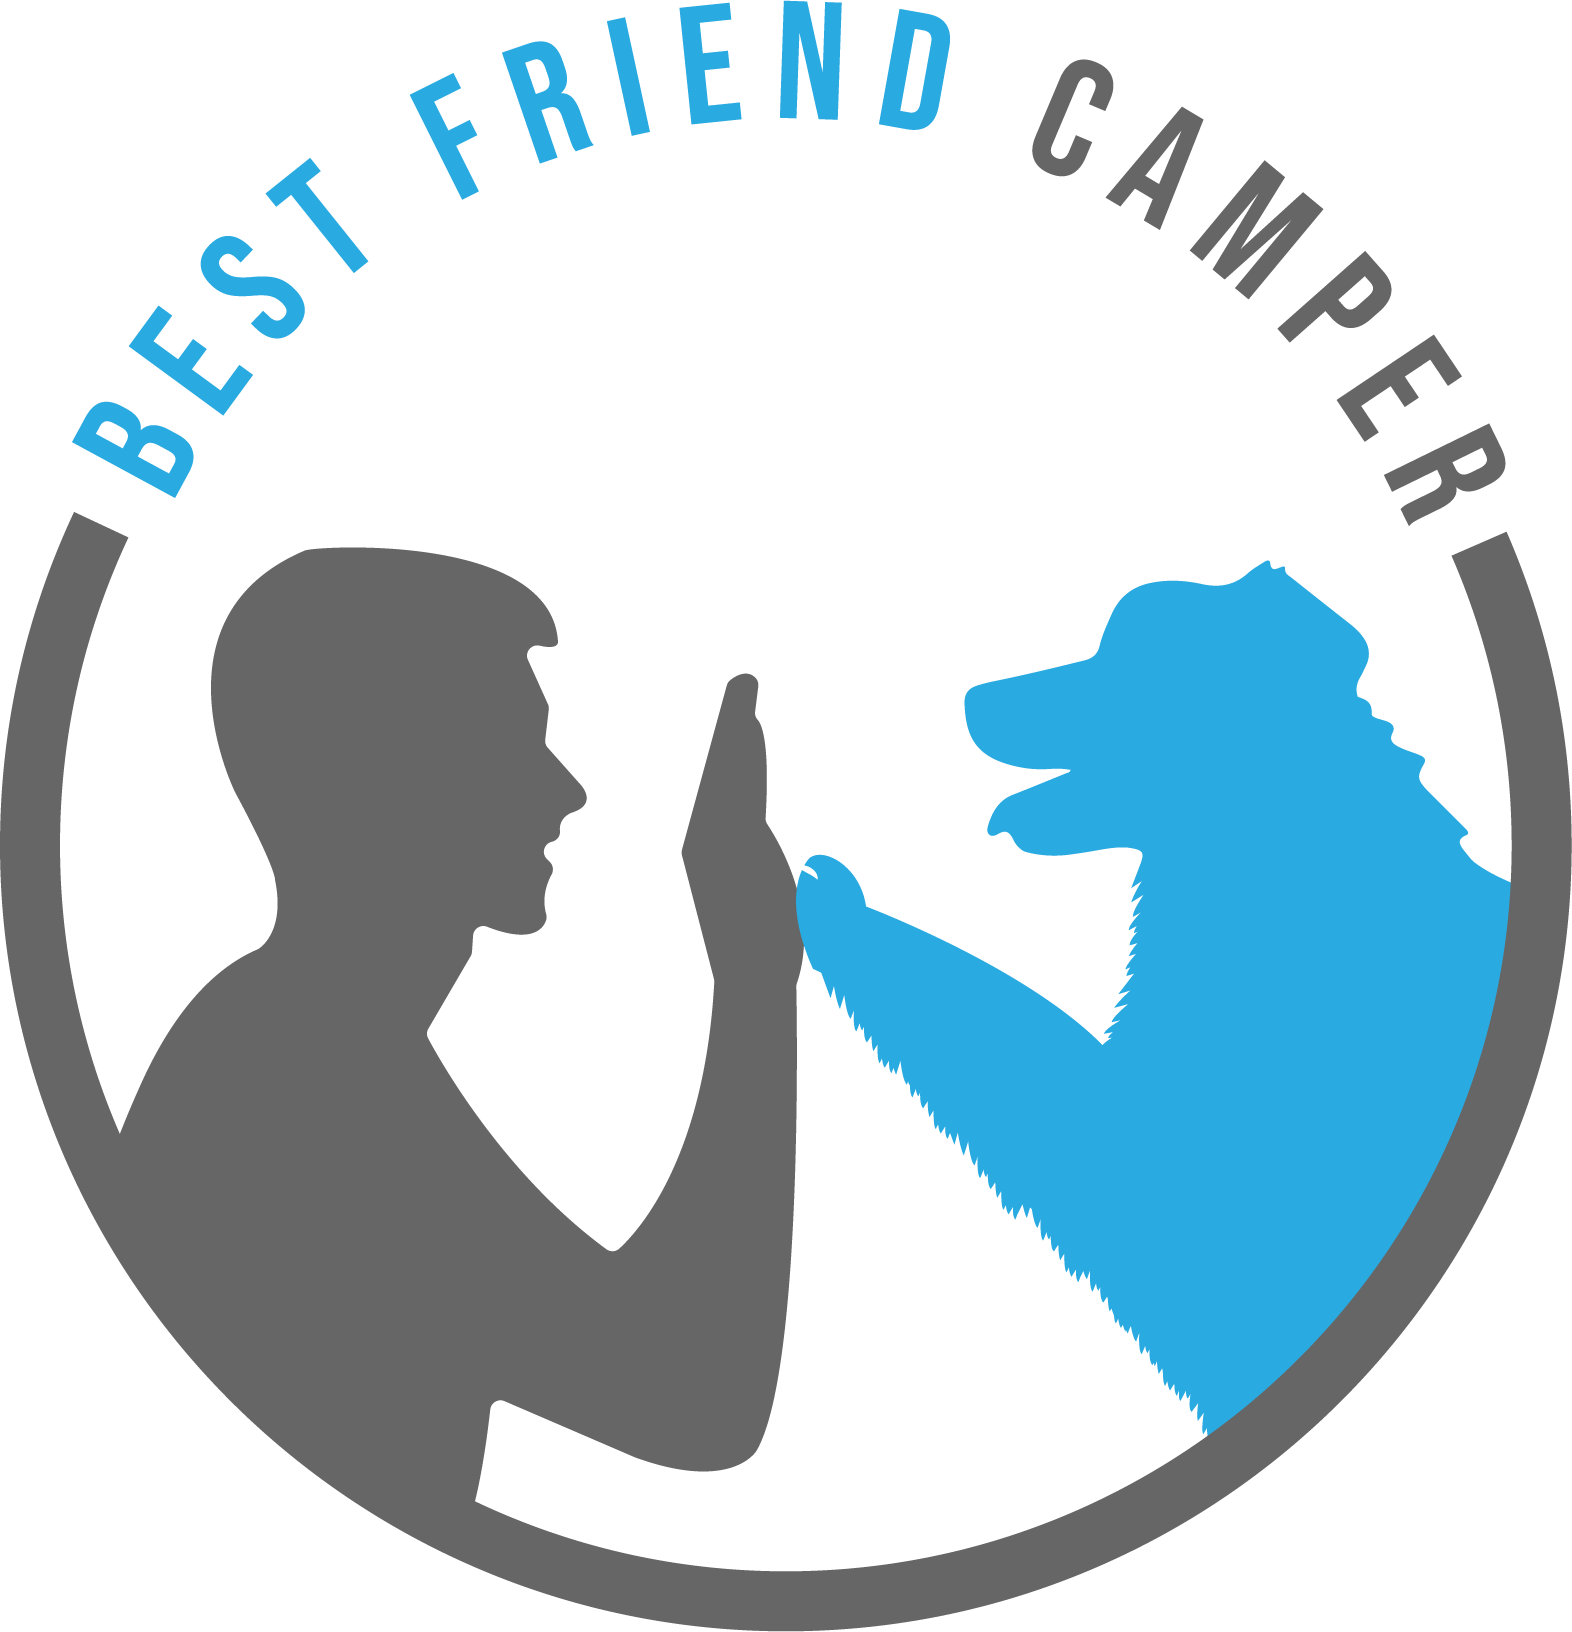 Best Fried Camper Logo